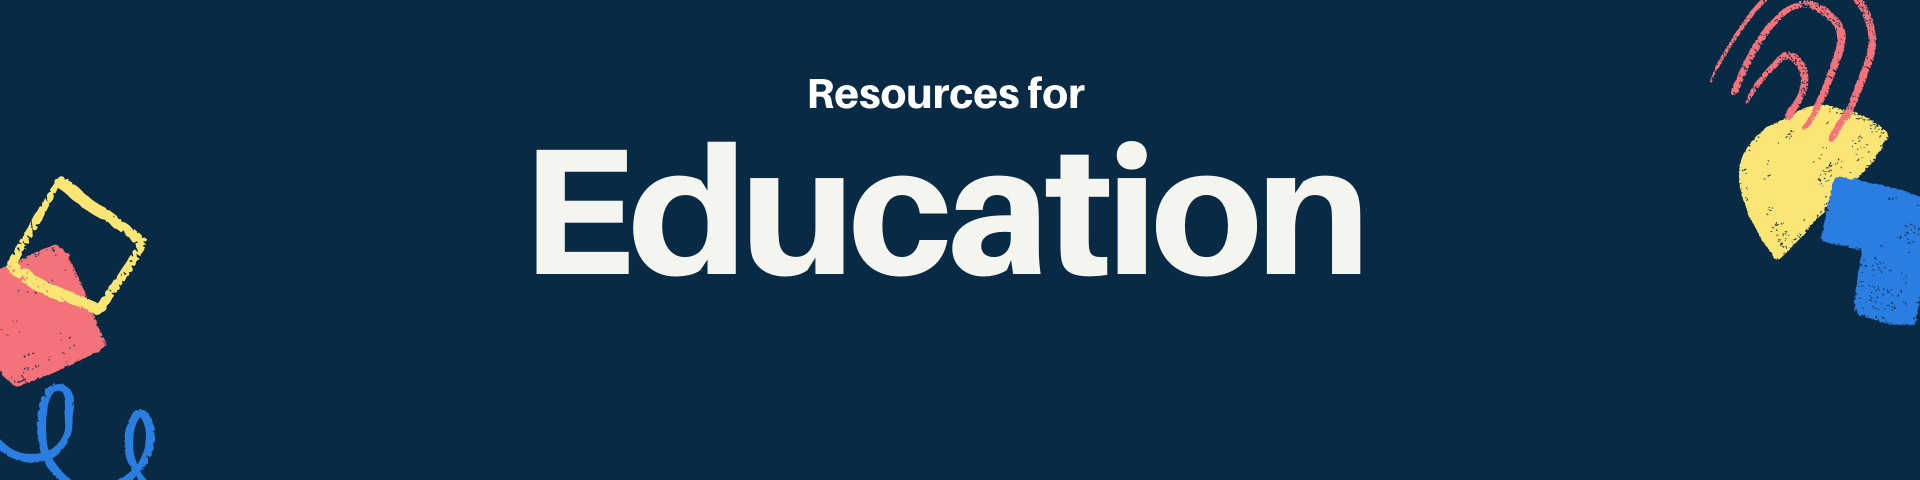 Resources for Education (header image)